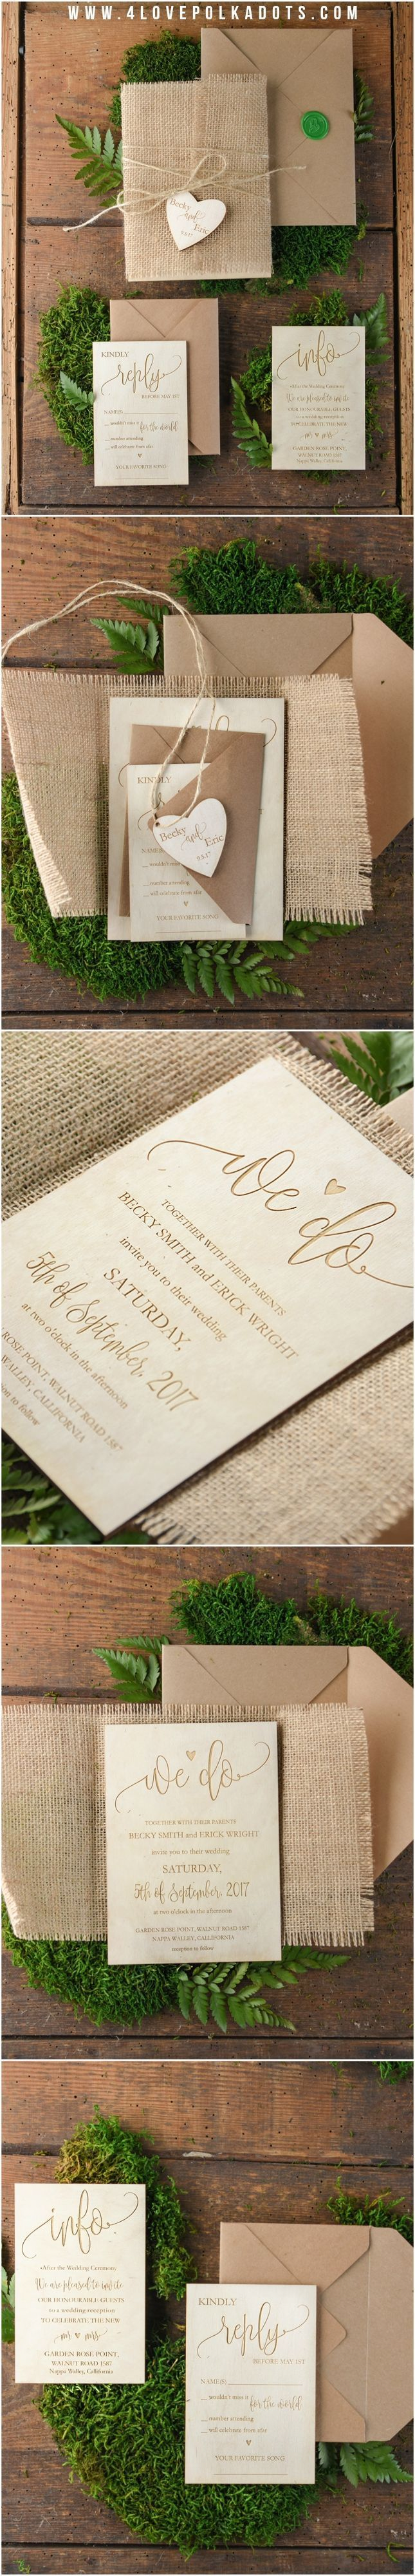 diy rustic wedding invitations burlap%0A Rustic Wedding Oh we do like a little rustic luxury  And these beautiful wedding  invitations by with the burlap wrapping hit it perfectly